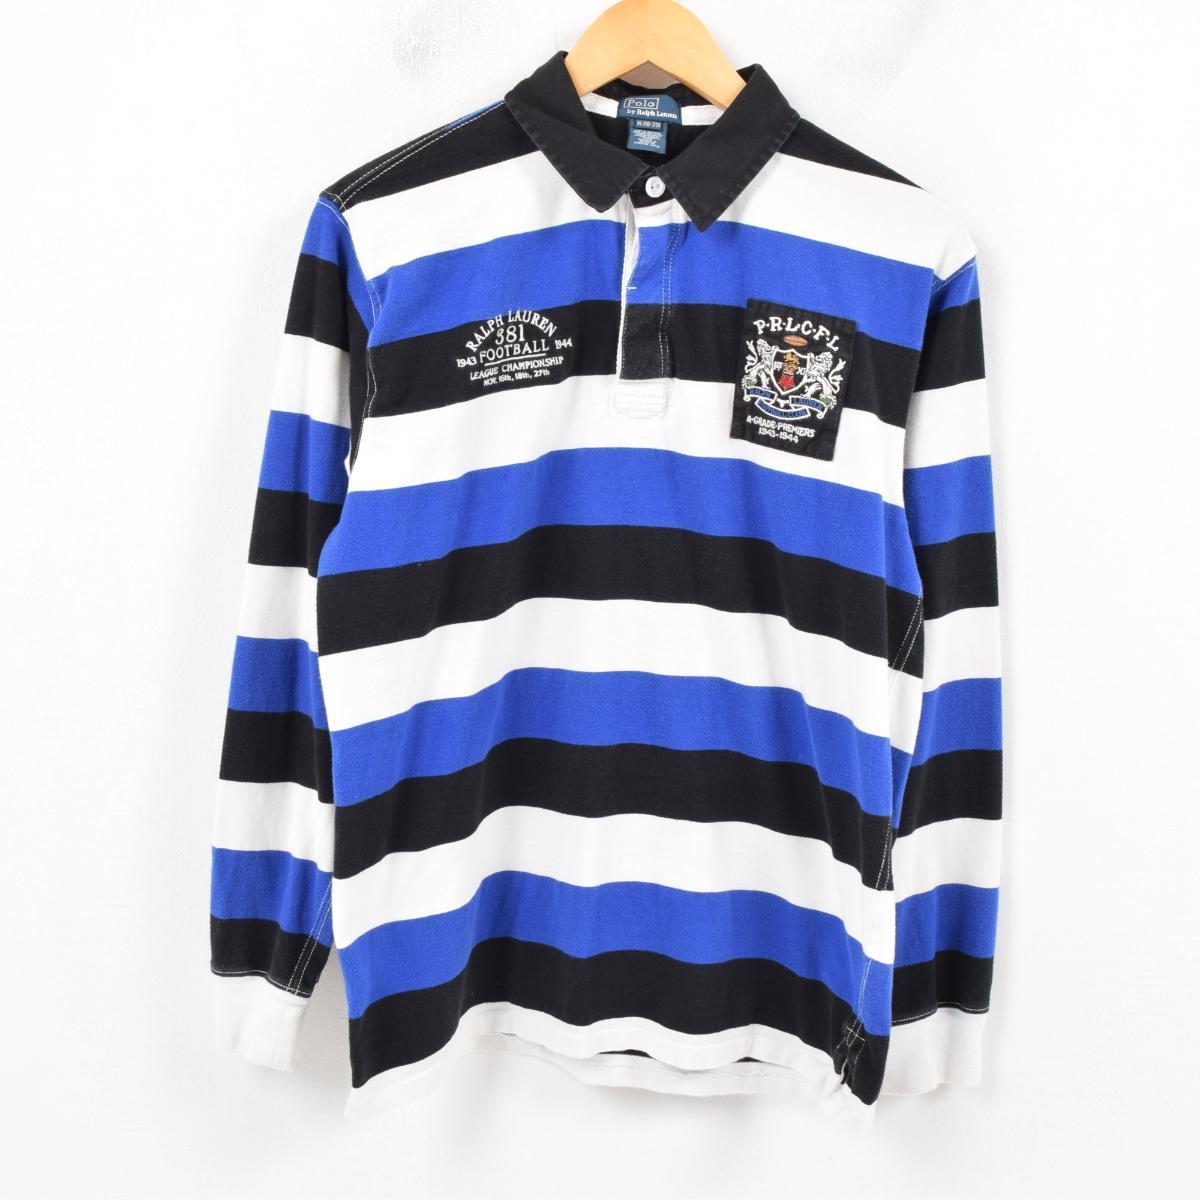 Horizontal Stripes Sleeves Men Rugby Ralph Long By Lauren M Polo Numbering Shirt Wap7649 qSpUzMVG